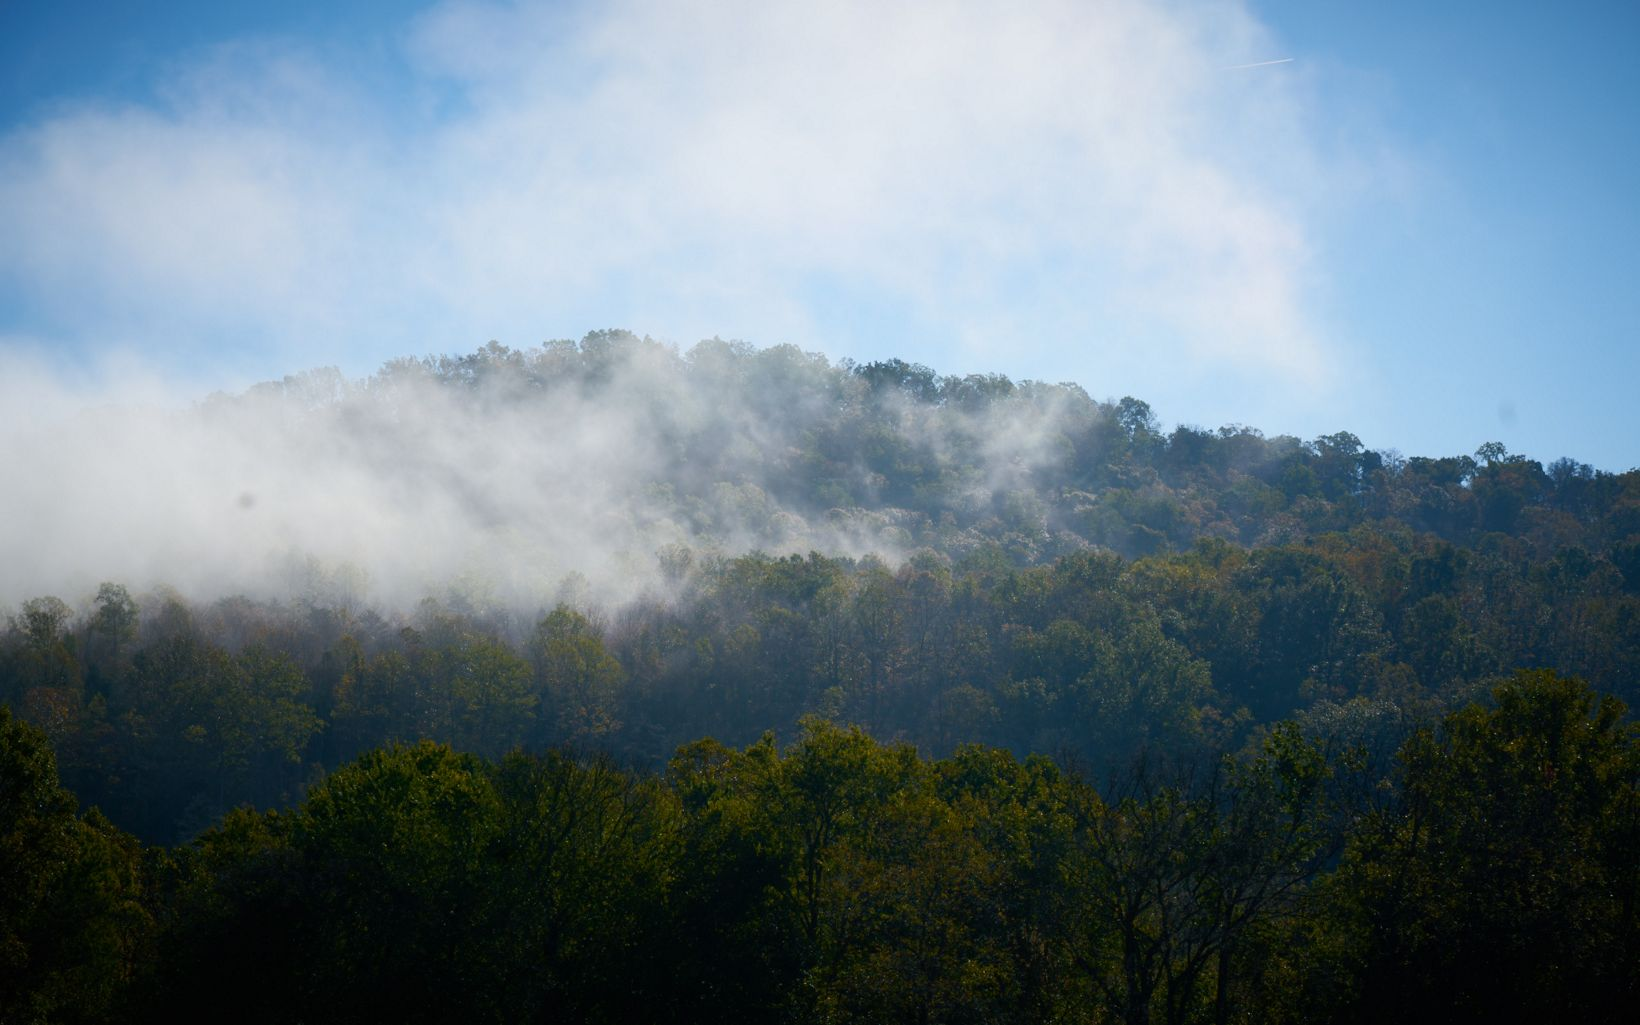 Mist over tree-covered hills.